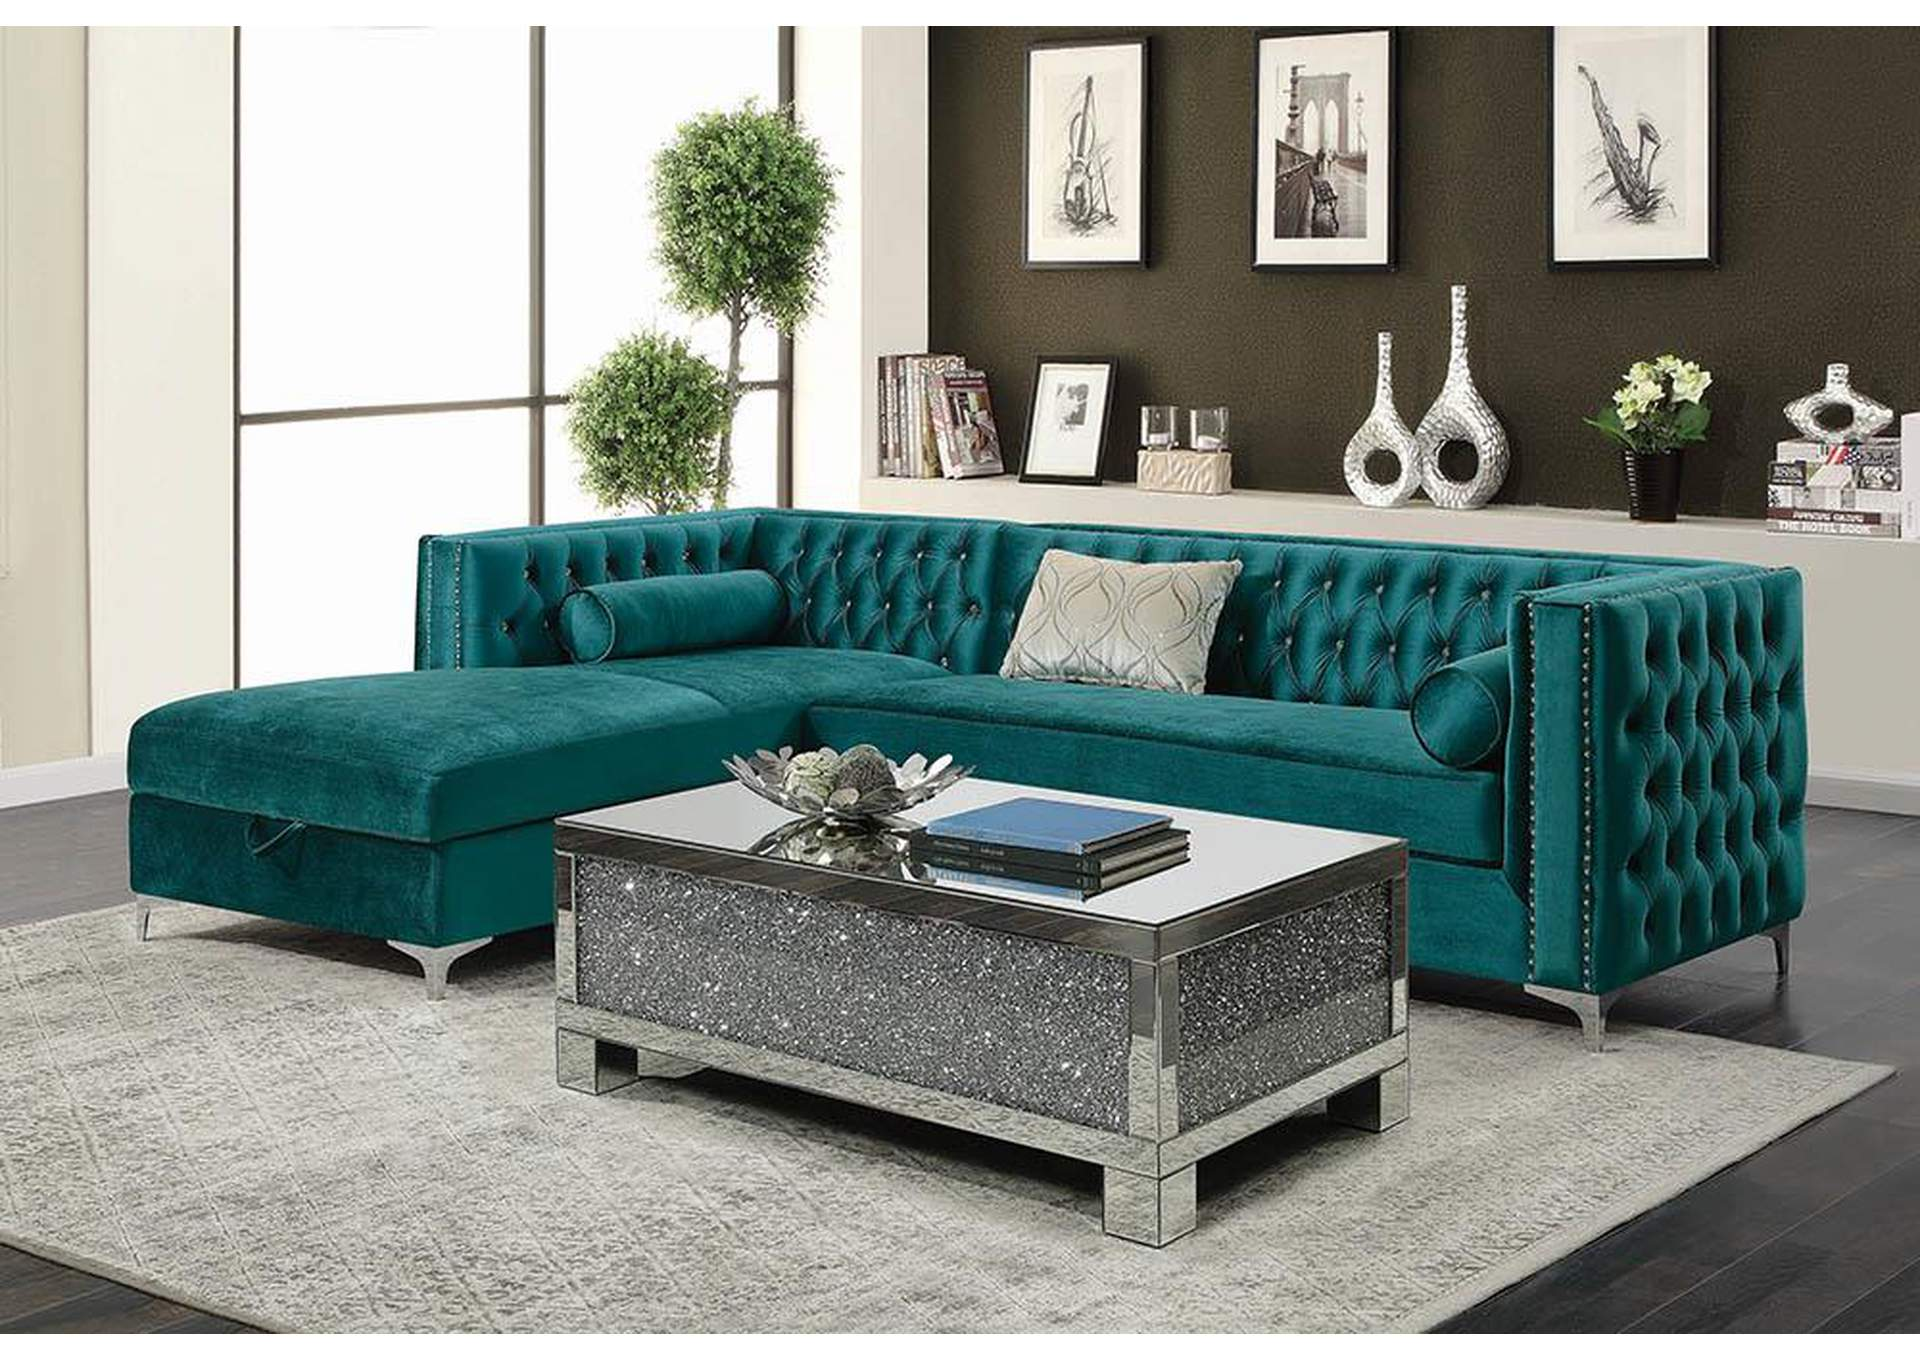 Cod Gray Bellaire Contemporary Teal and Chrome Sectional,Coaster Furniture